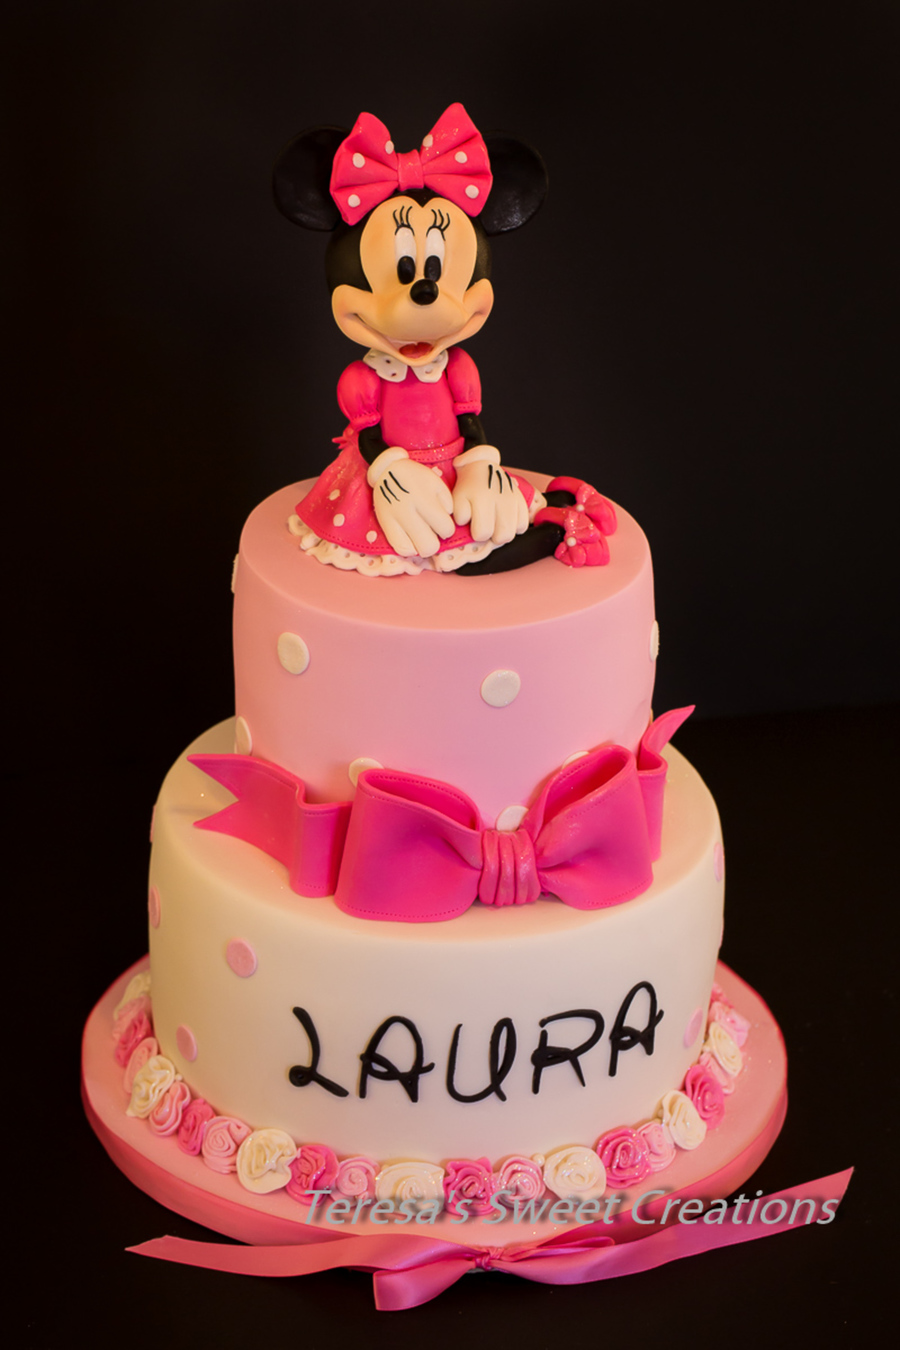 Minnie Mouse Cake All Edible And Handmade By Me